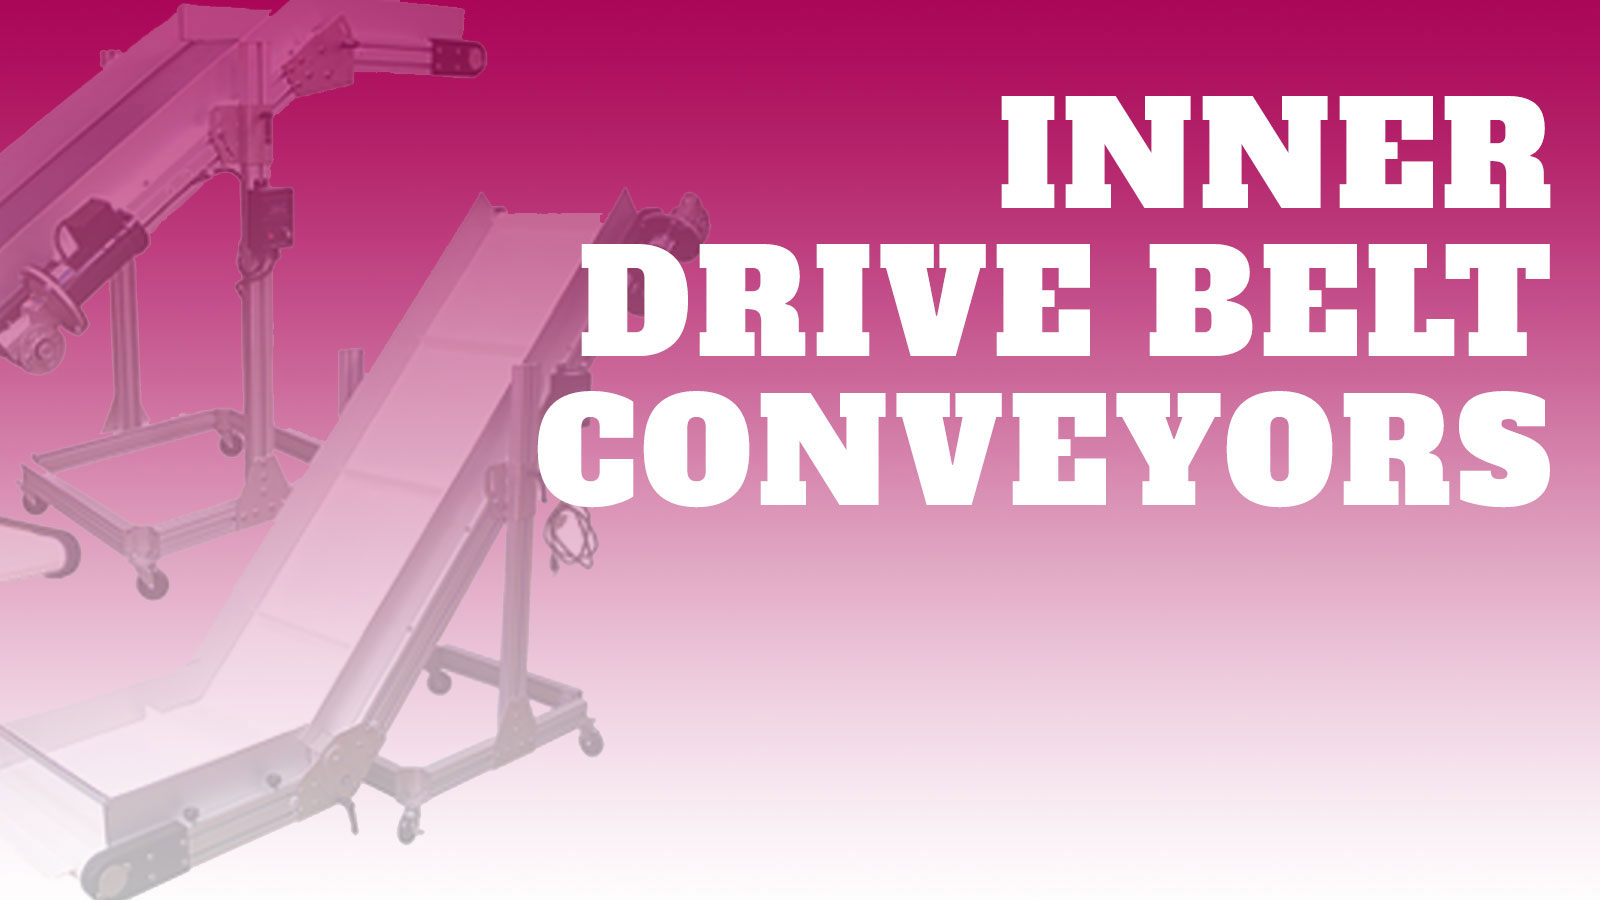 Conveyor-Inner-Drive-Belt